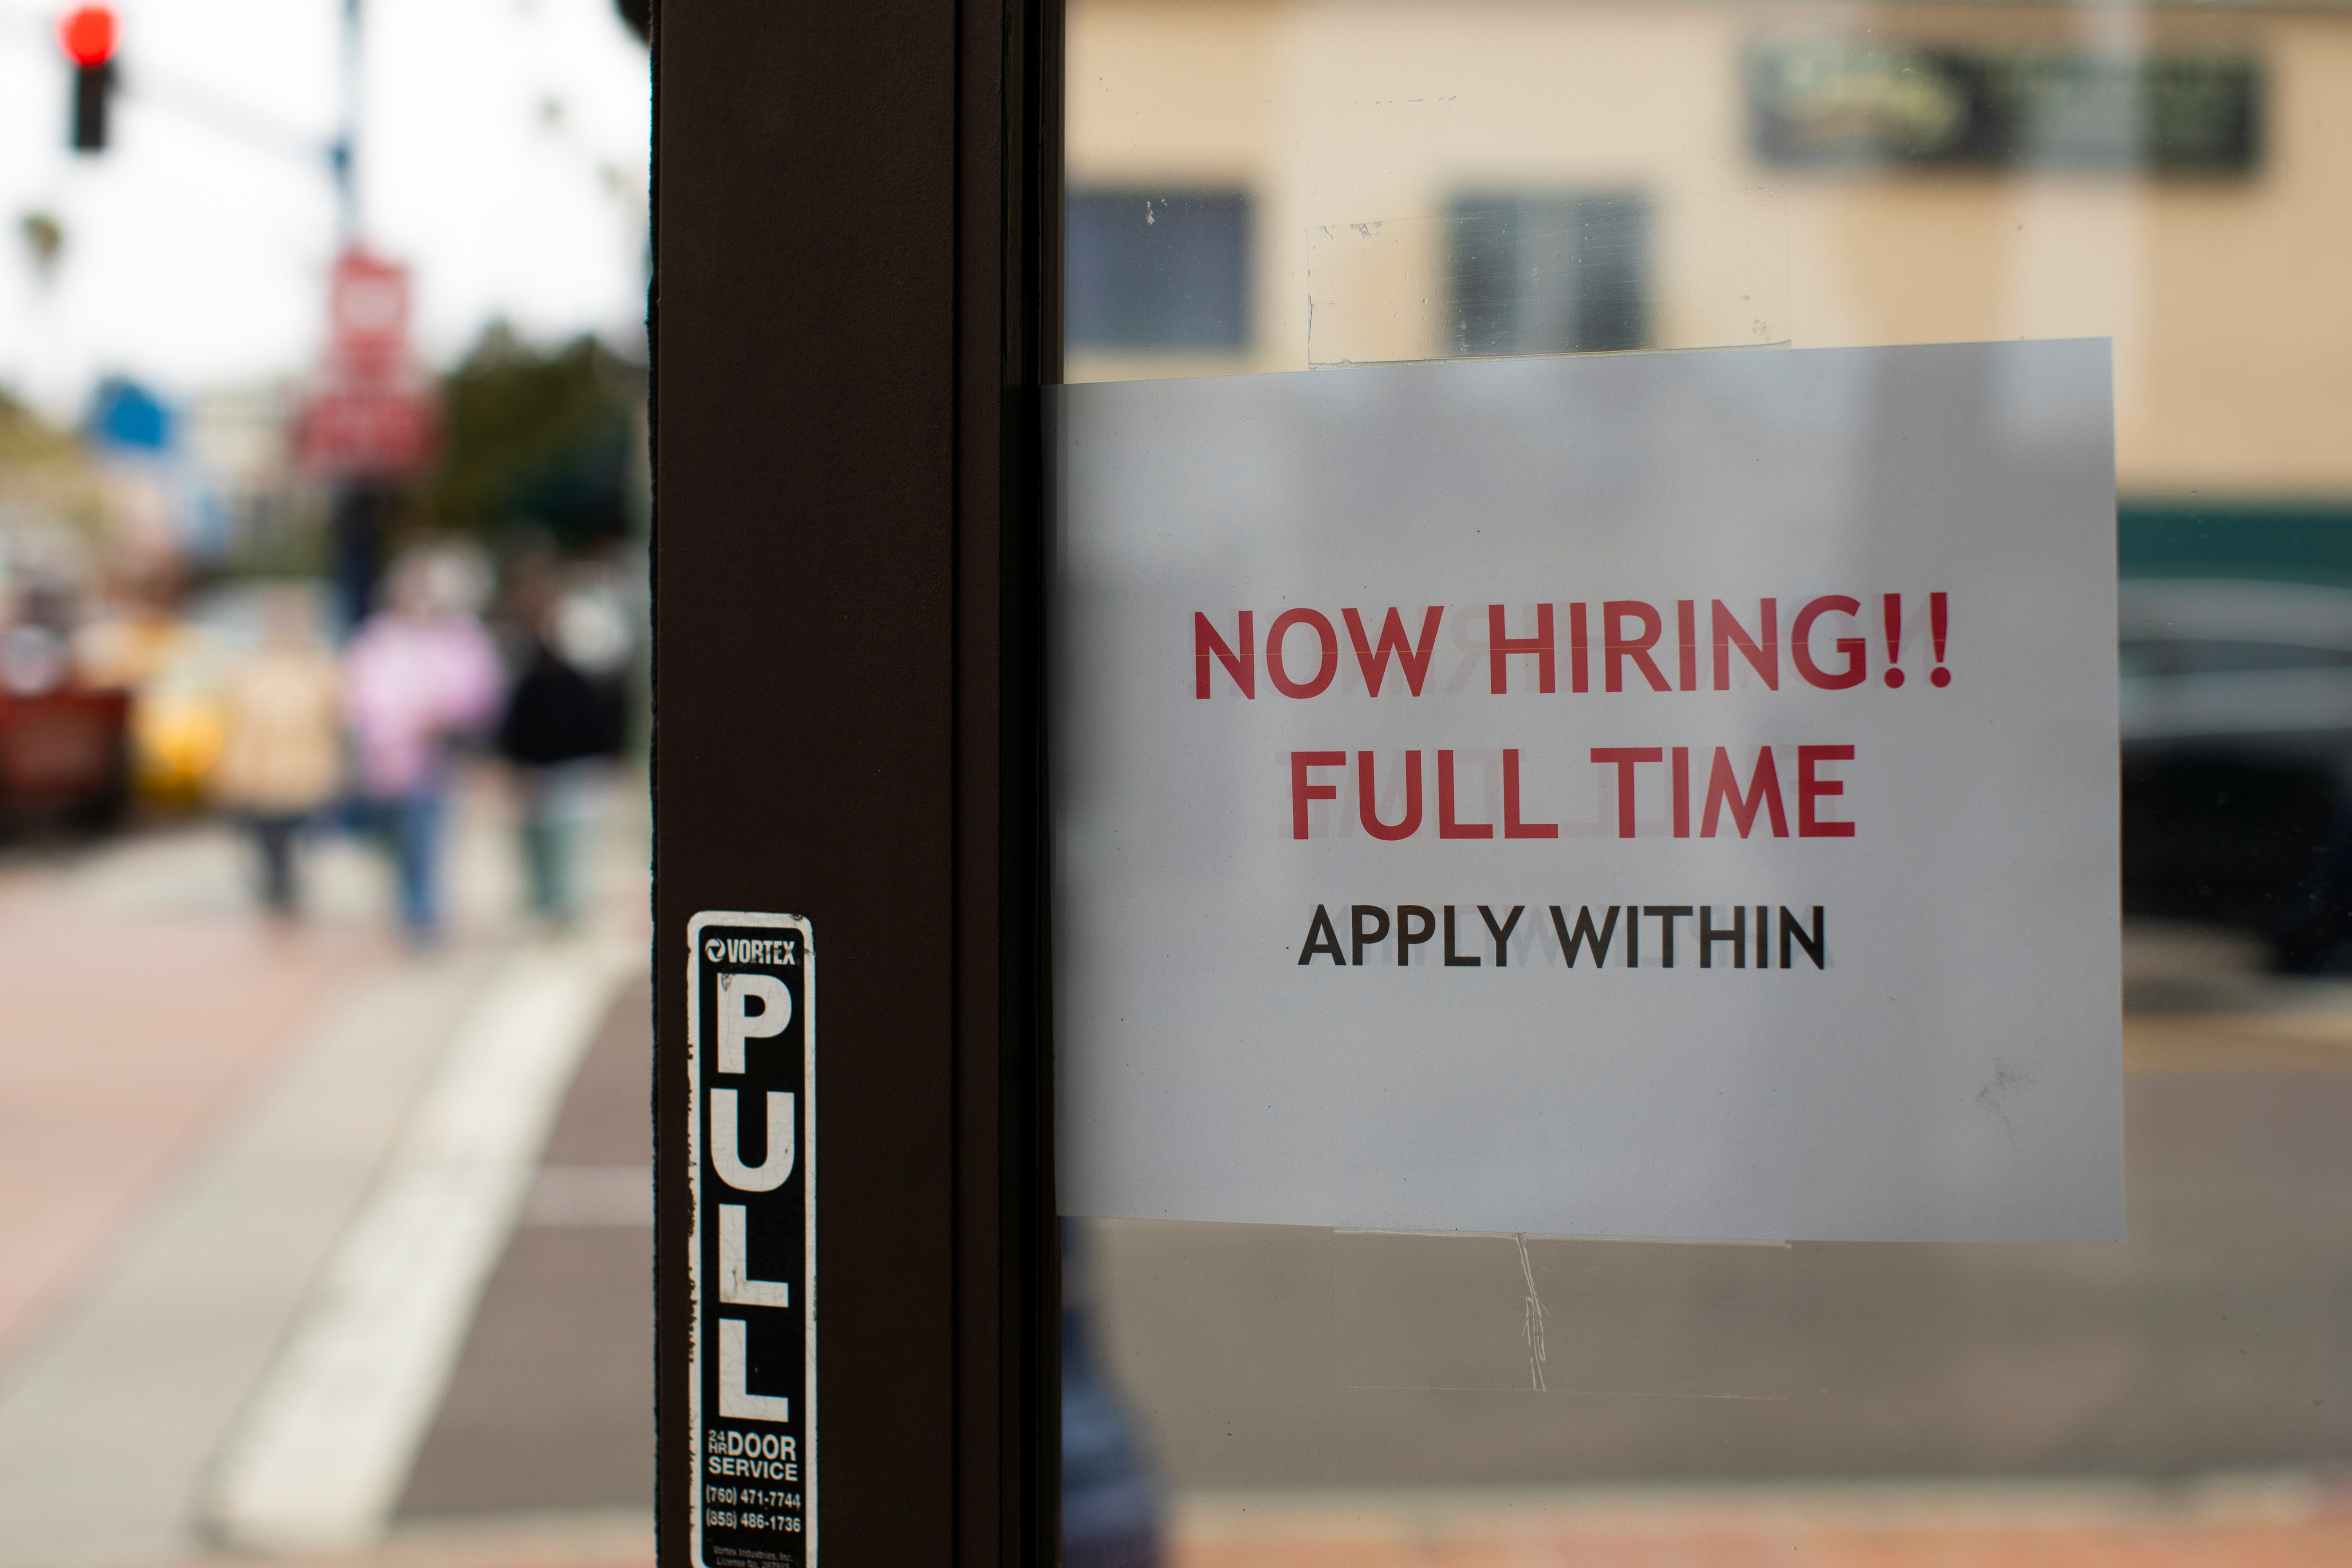 A retail store advertising a full time job on its open door in Oceanside, California, U.S., May 10, 2021. REUTERS/Mike Blake